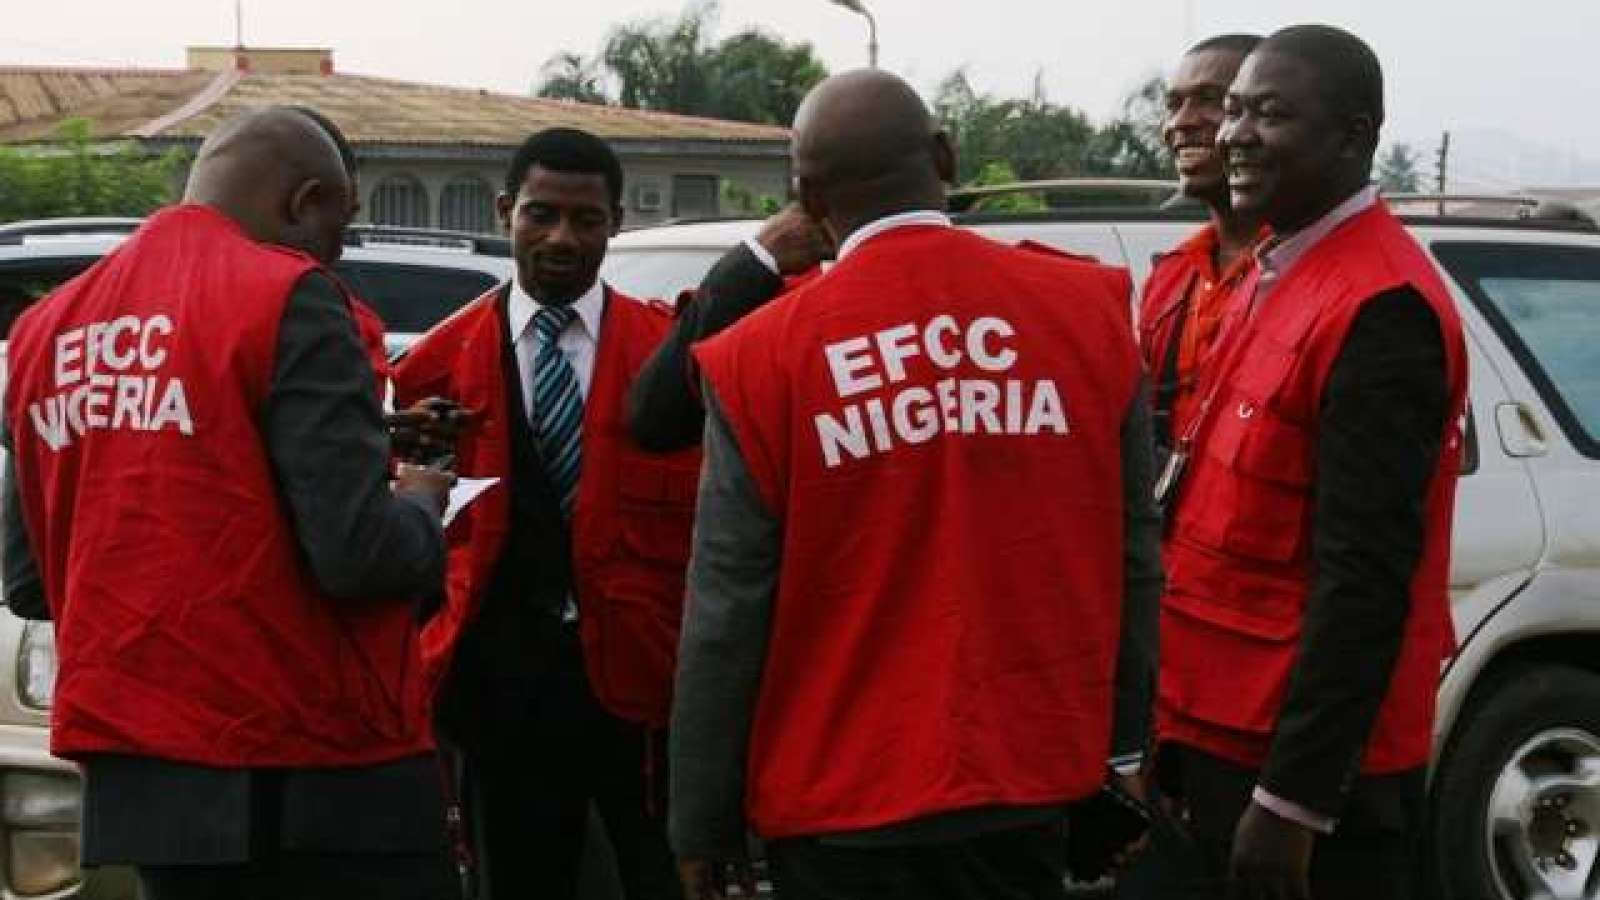 Alleged fraud, money laundering: EFCC sets up 'special panel' to investigate Air Peace Boss, Onyema